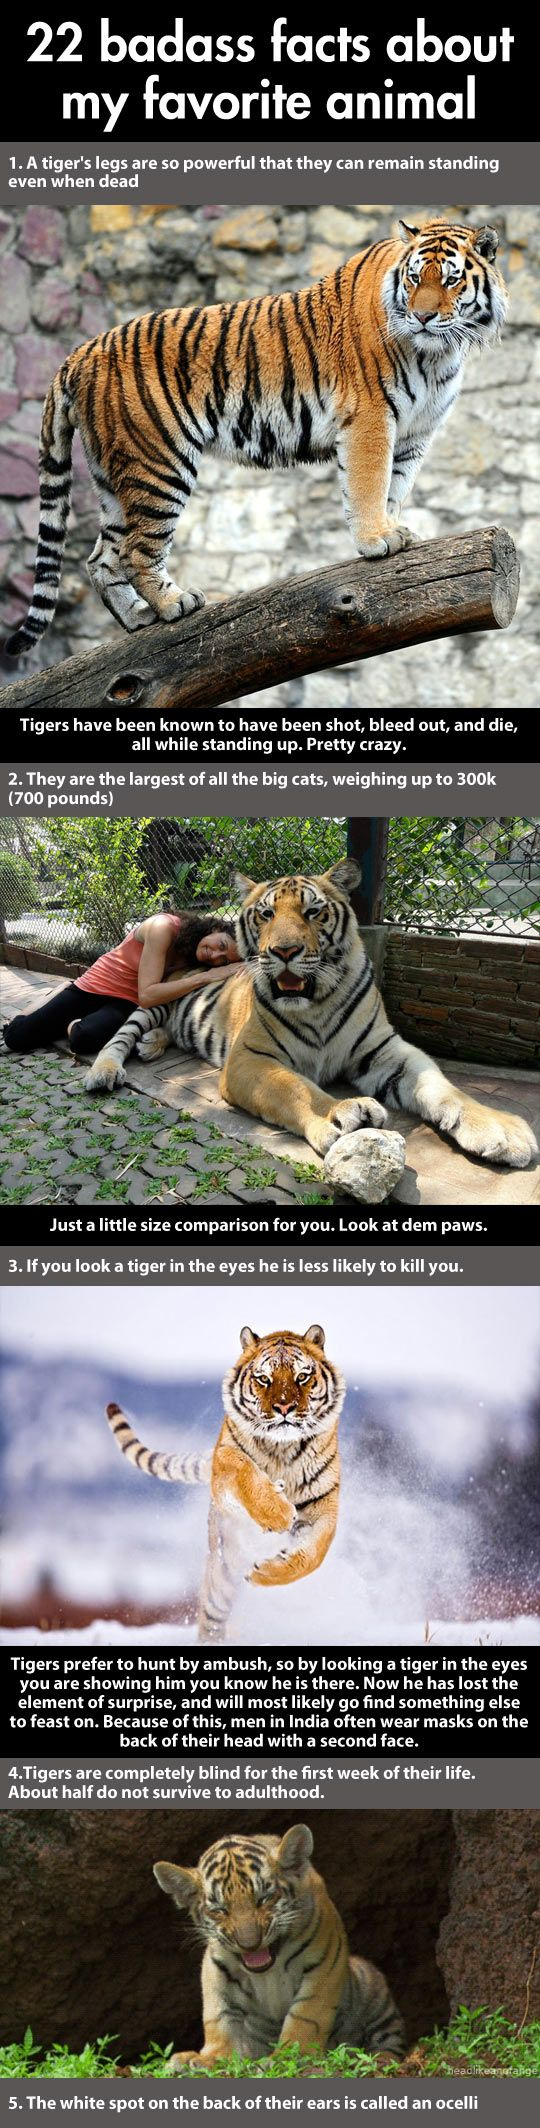 Badass facts about a tiger…